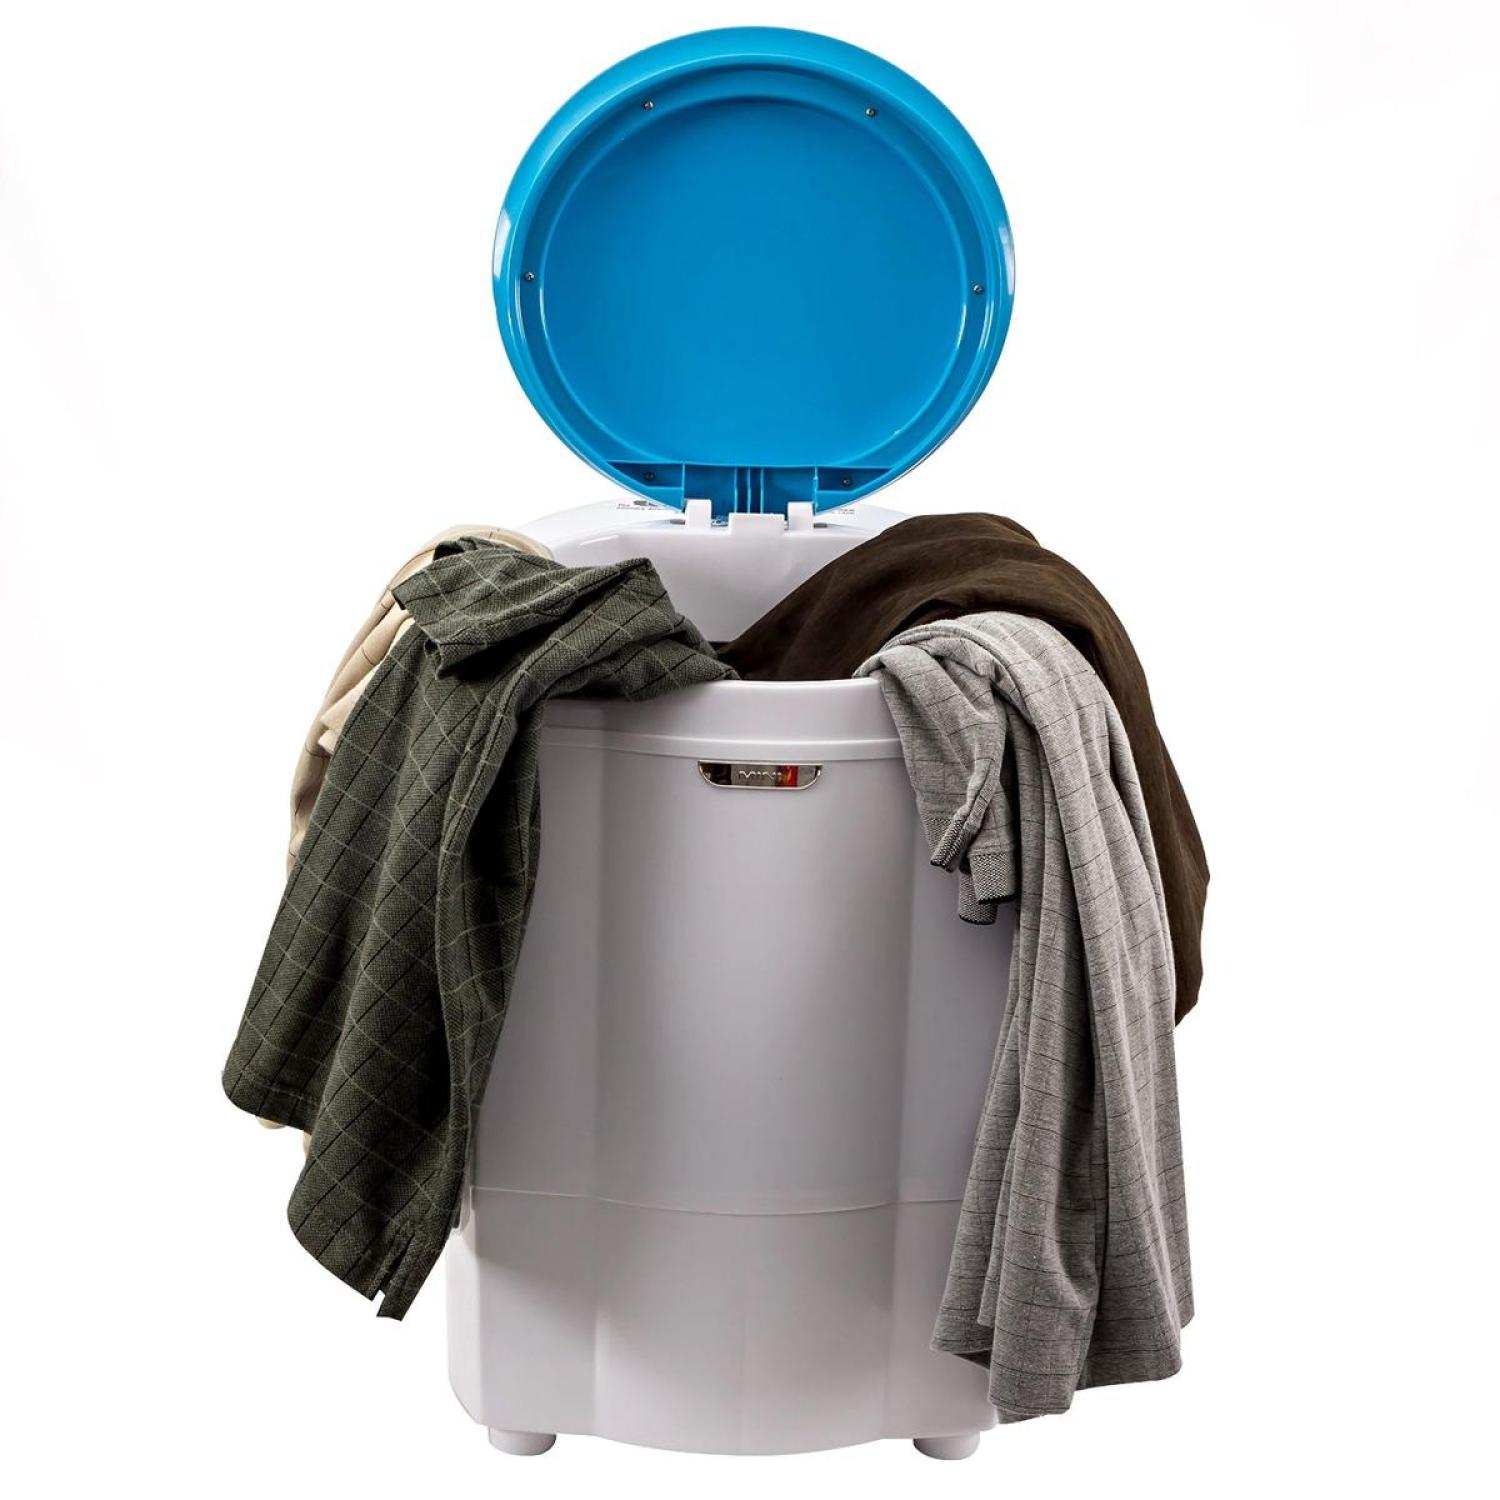 Clothes Washing Machine ~ Off grid manual washing machine that won t numb your hands